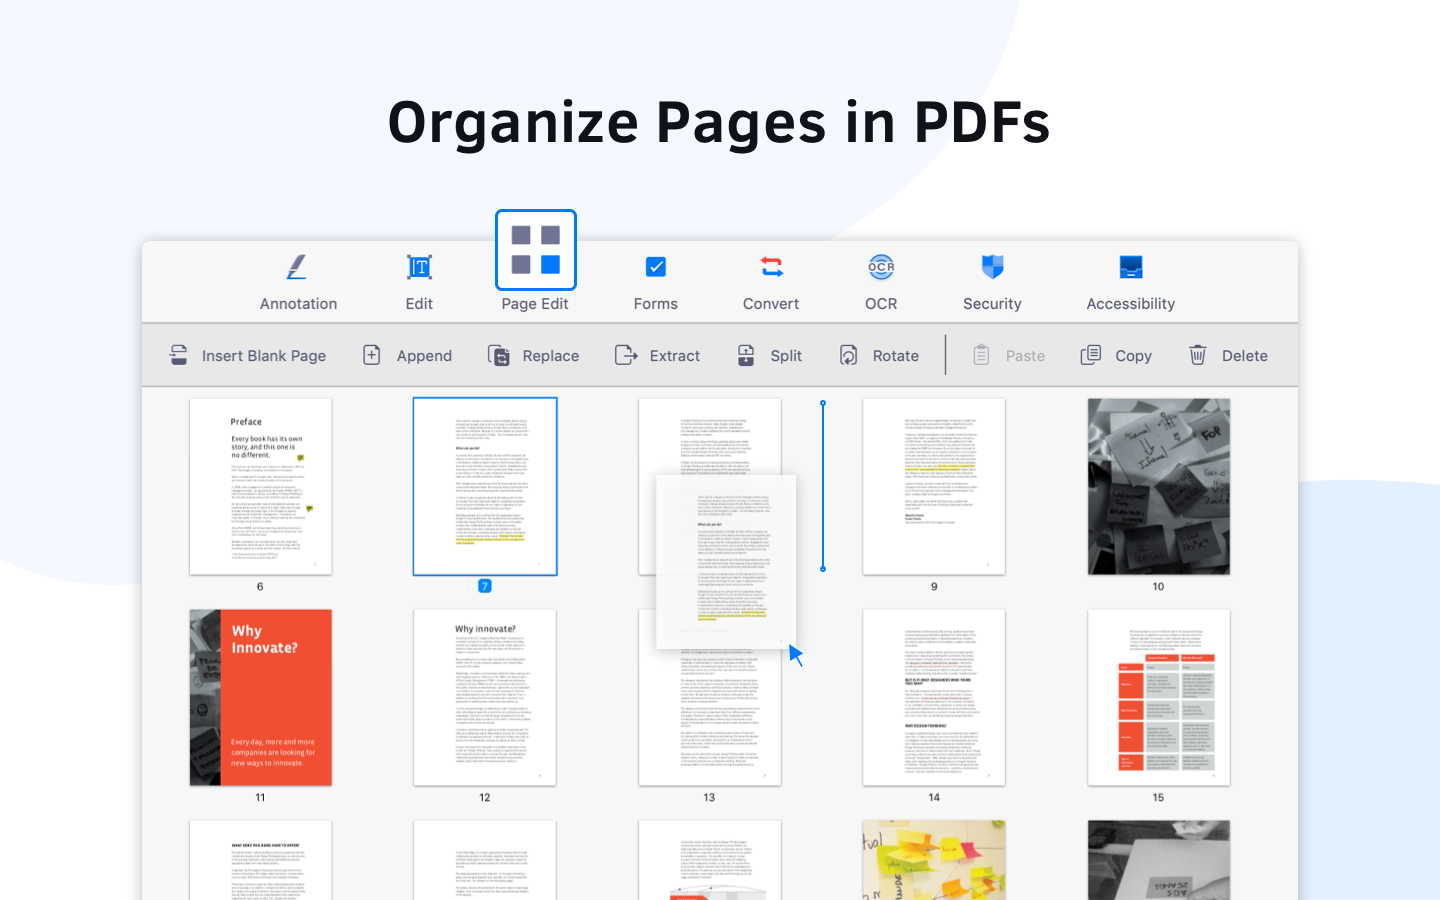 Organize pages in PDFs